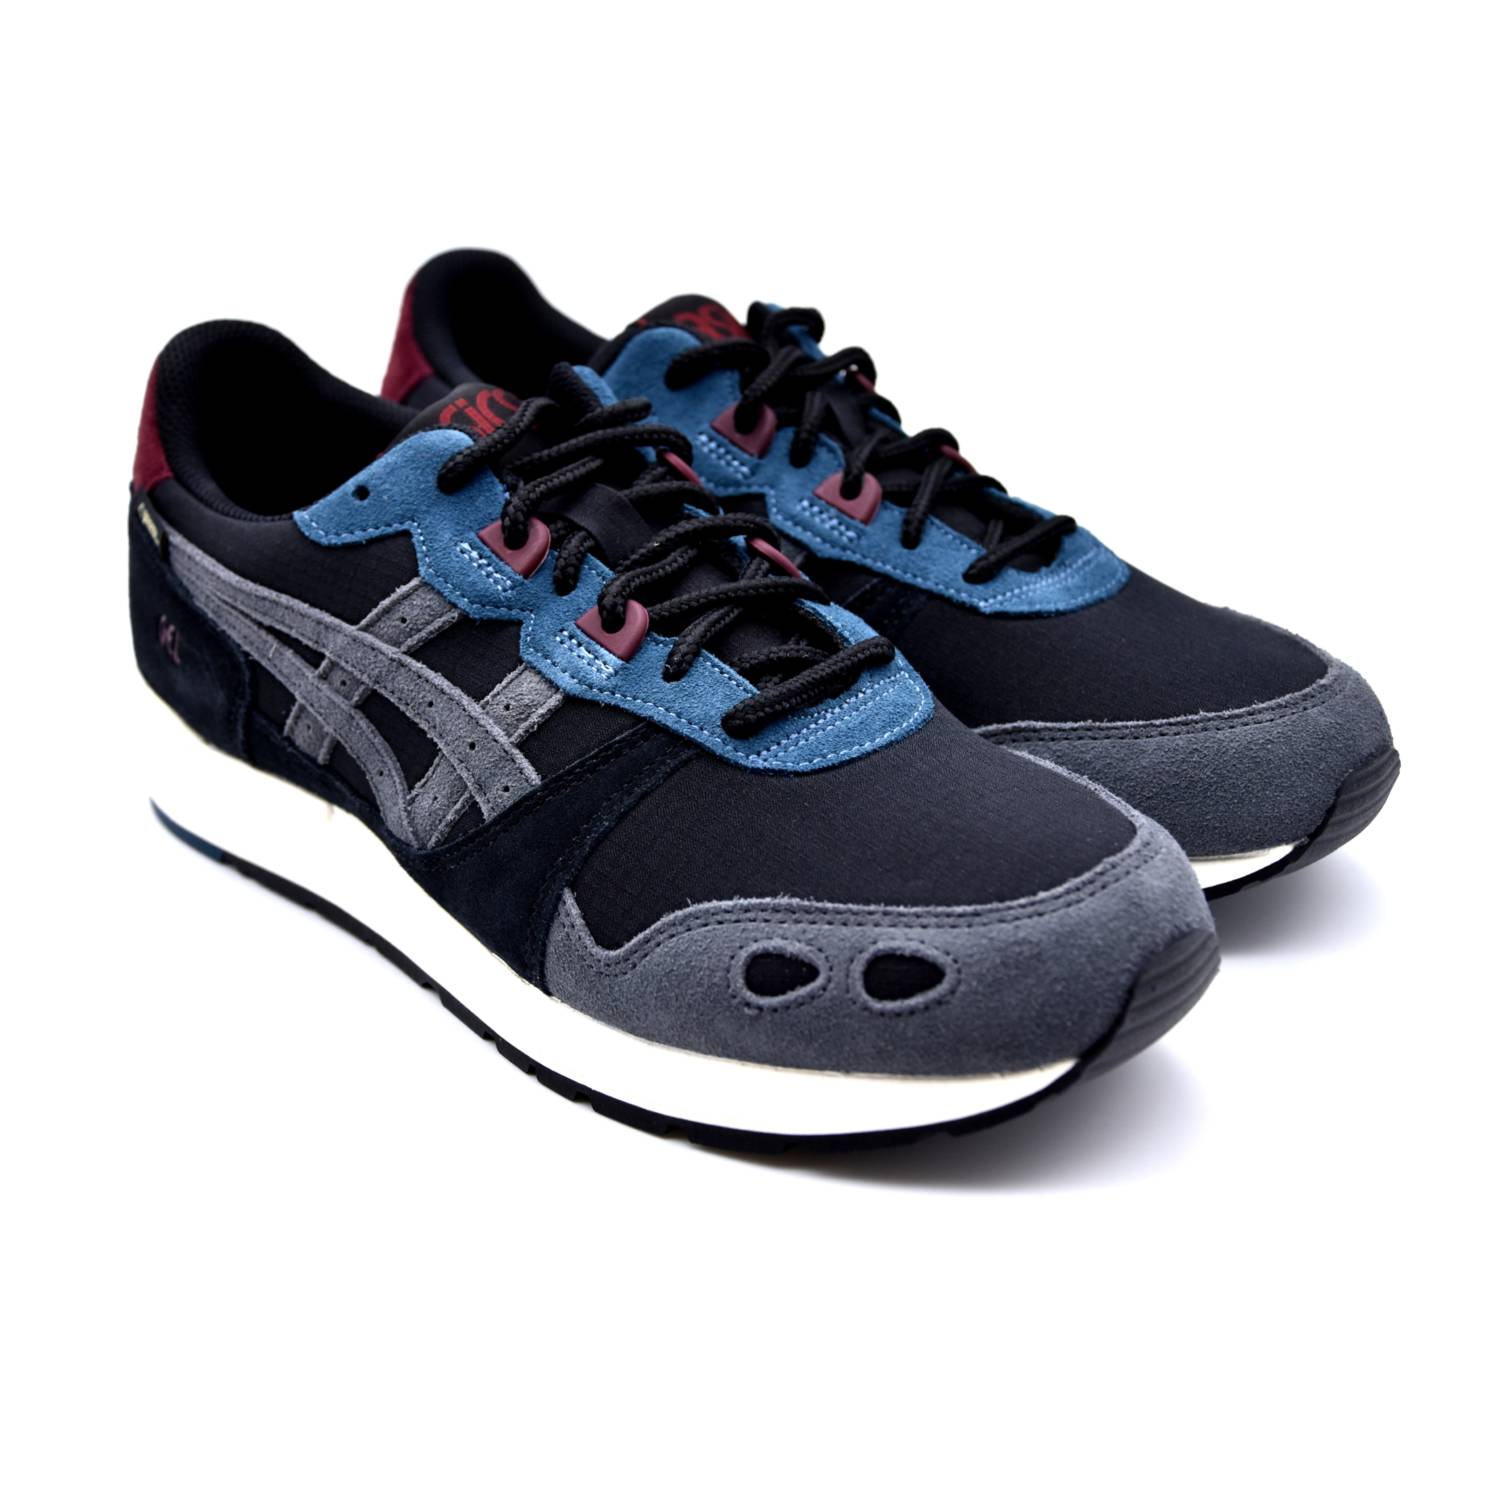 gel lyte gtx Cheaper Than Retail Price> Buy Clothing, Accessories ...